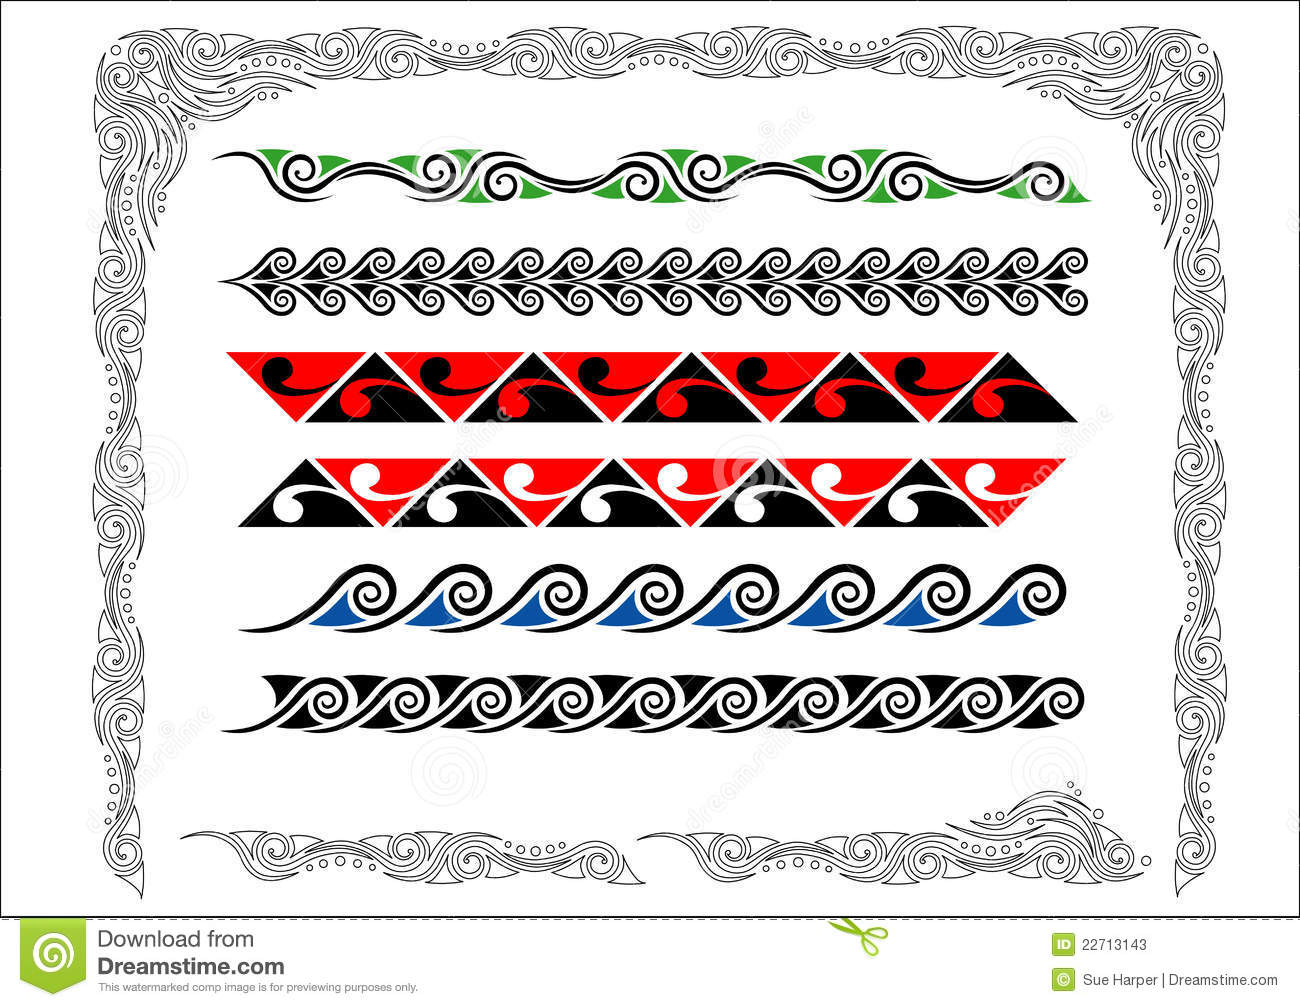 Collection of Maori Koru Borders with color.